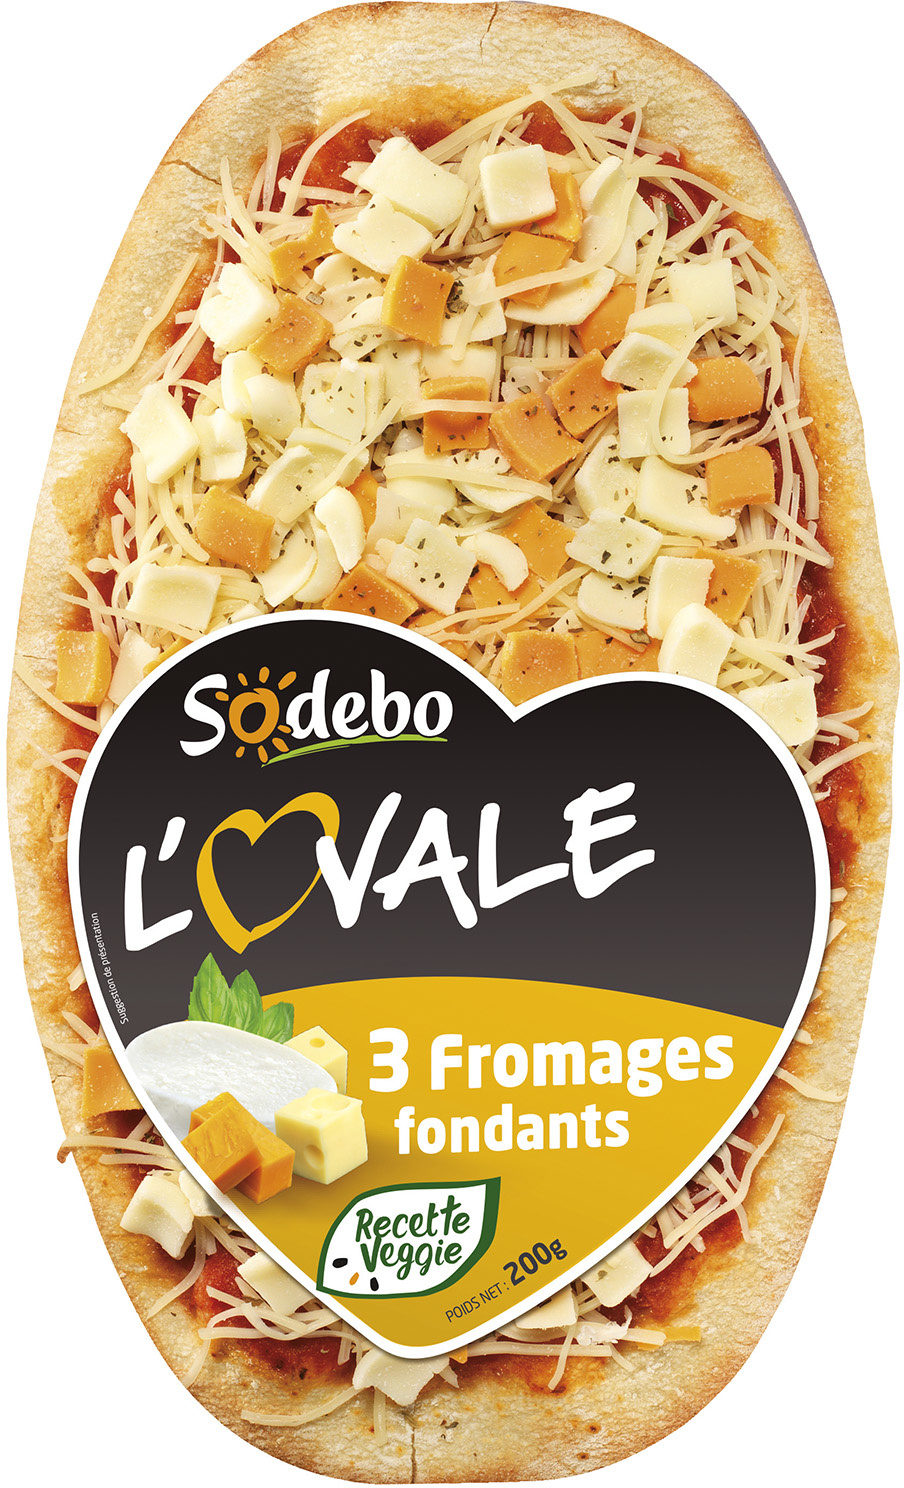 Sodebo L'Ovale 3 fromages fondants - Product